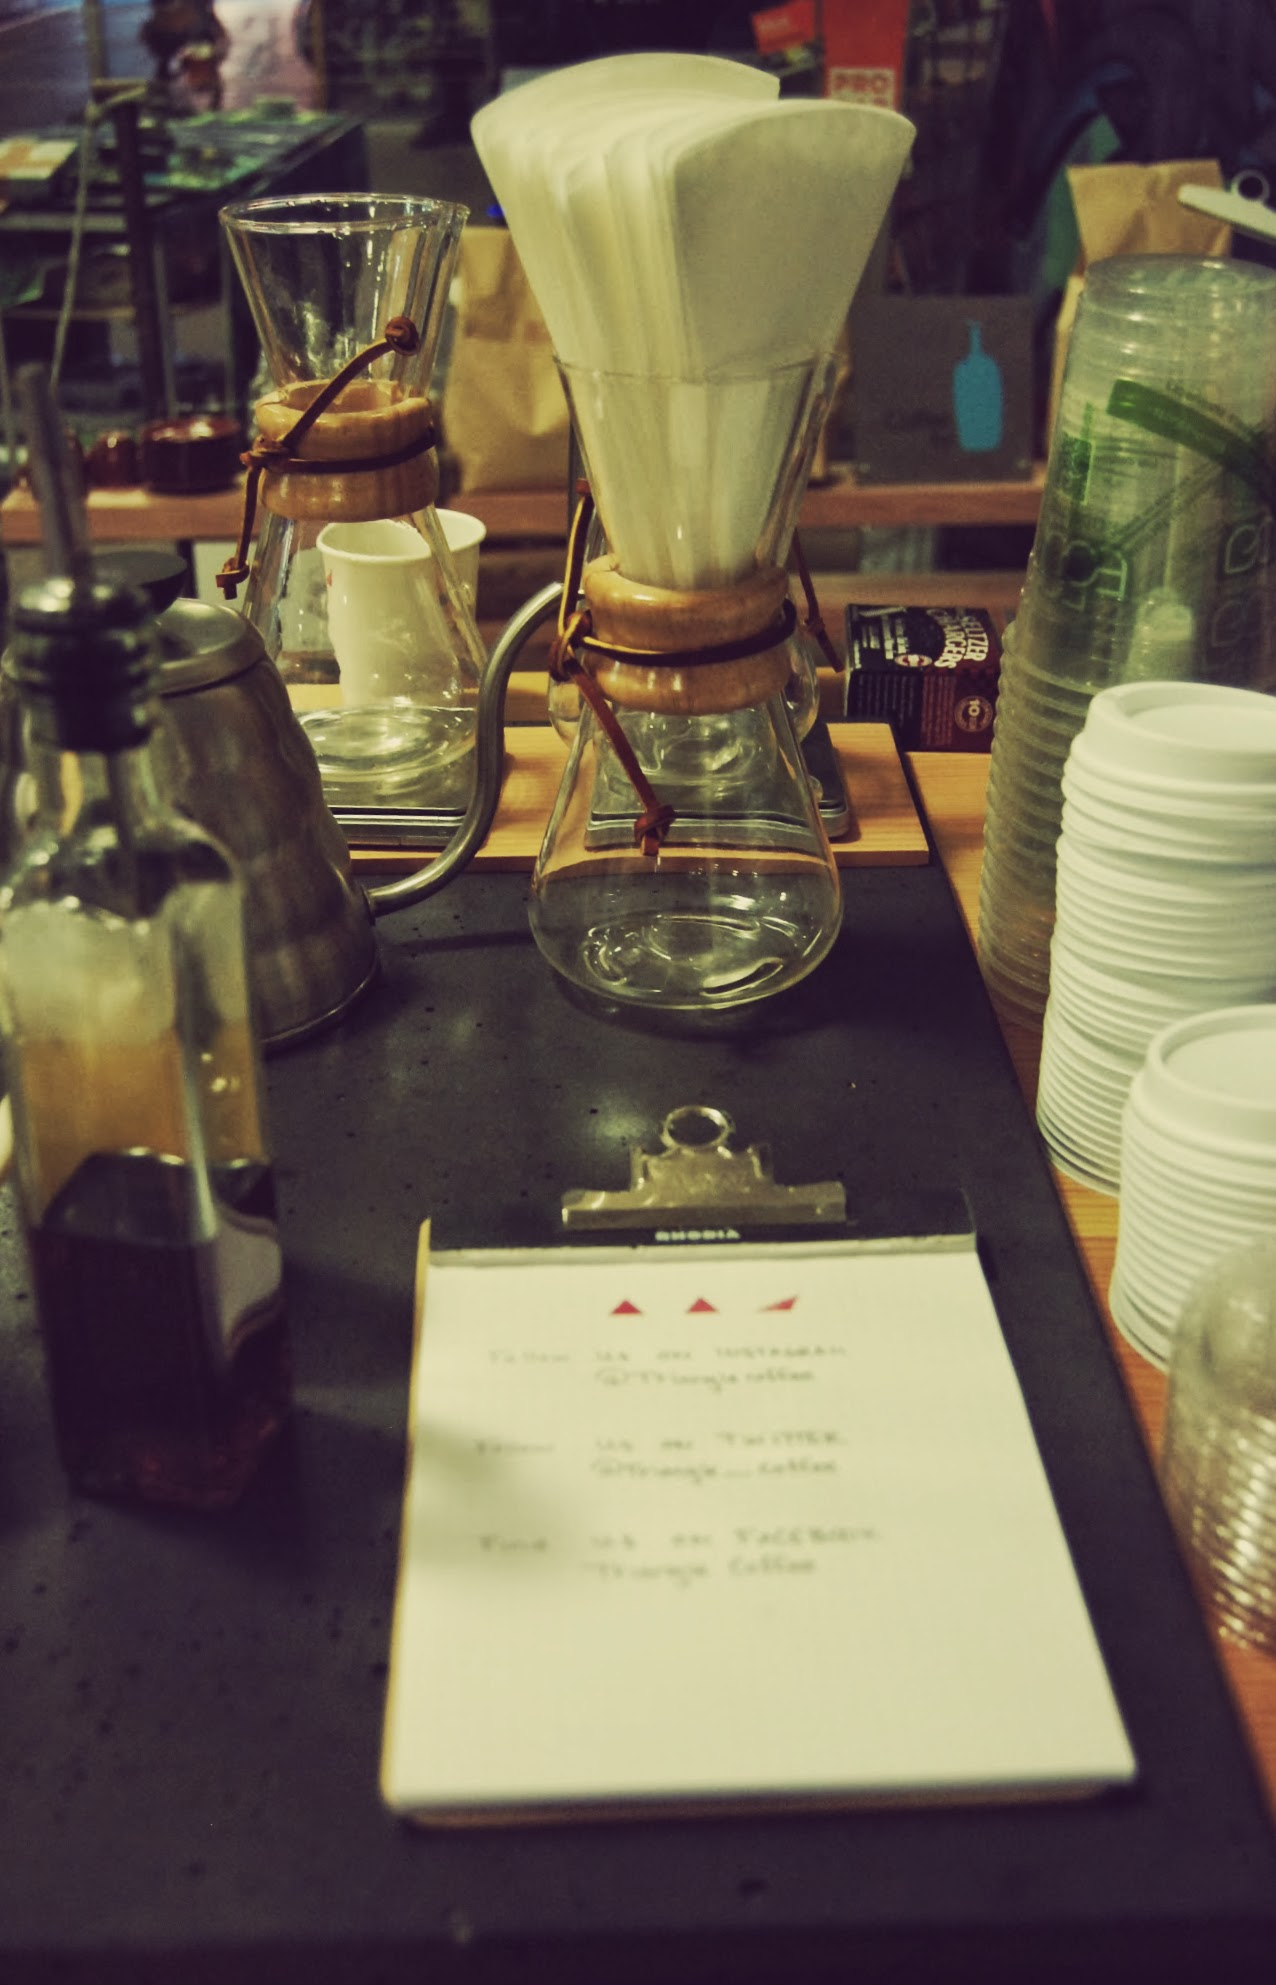 Chemex coffee makers (center) and other equipment is stored on top of or insidetwo coffee counter stands.